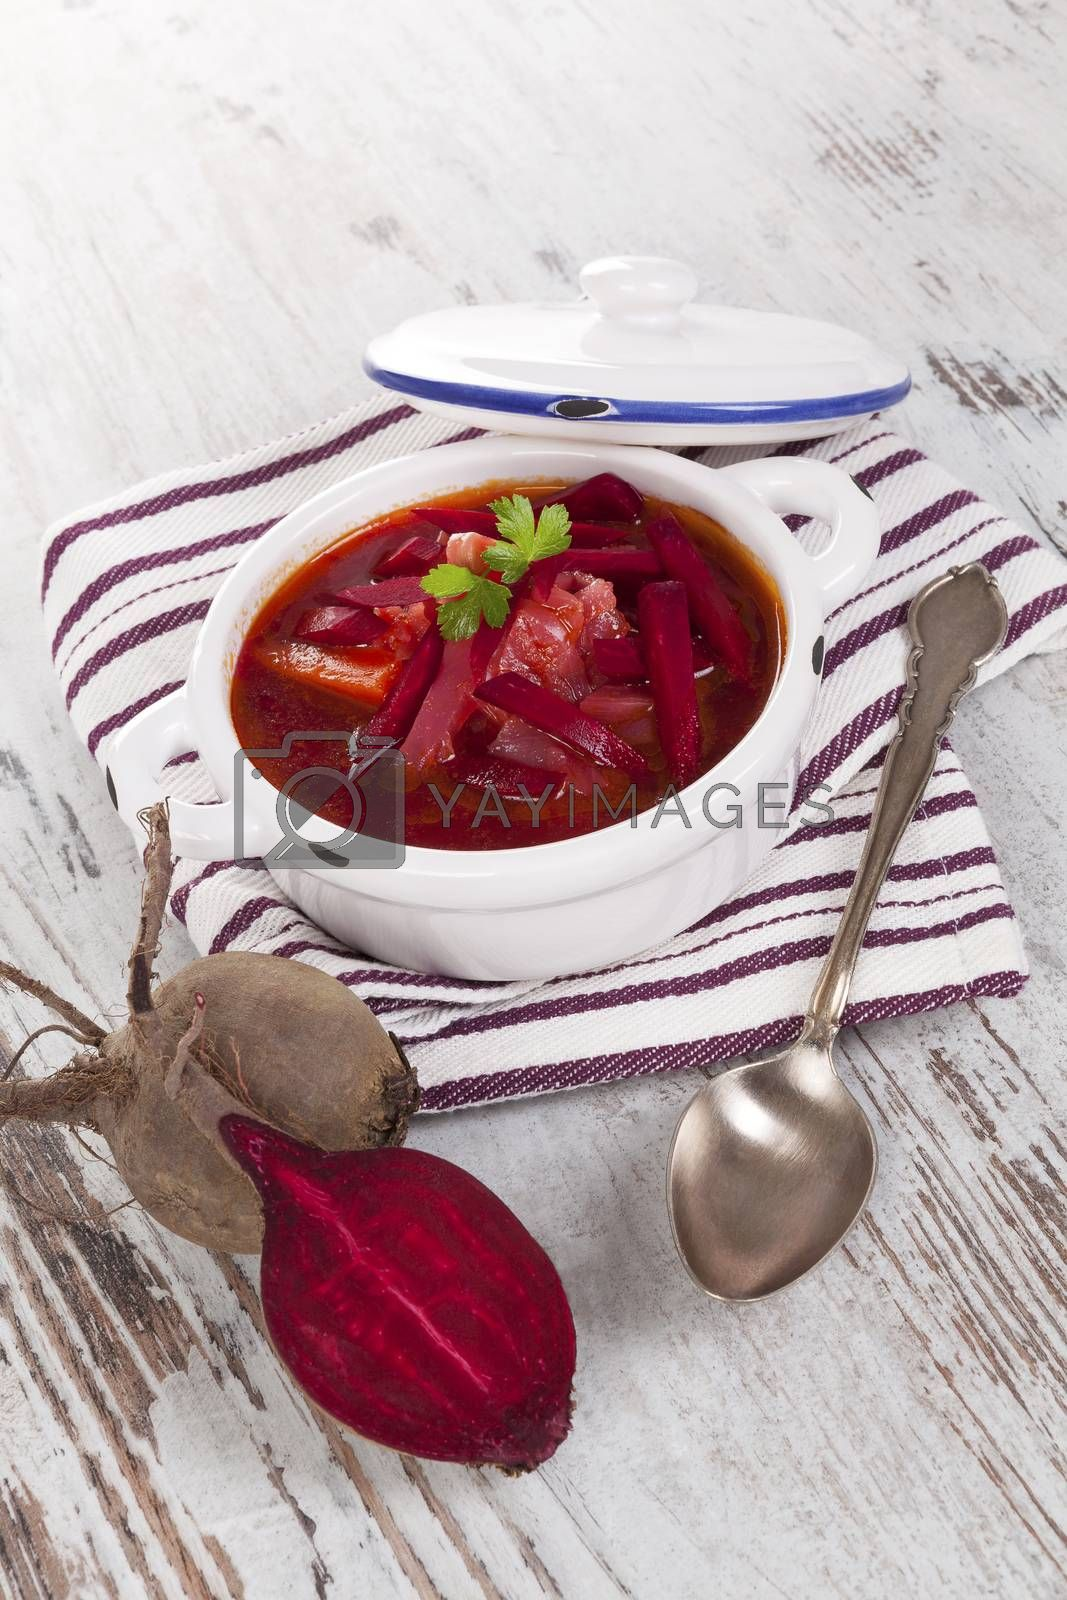 Delicious ukrainian borsch soup on white wooden background. Culinary food eating.